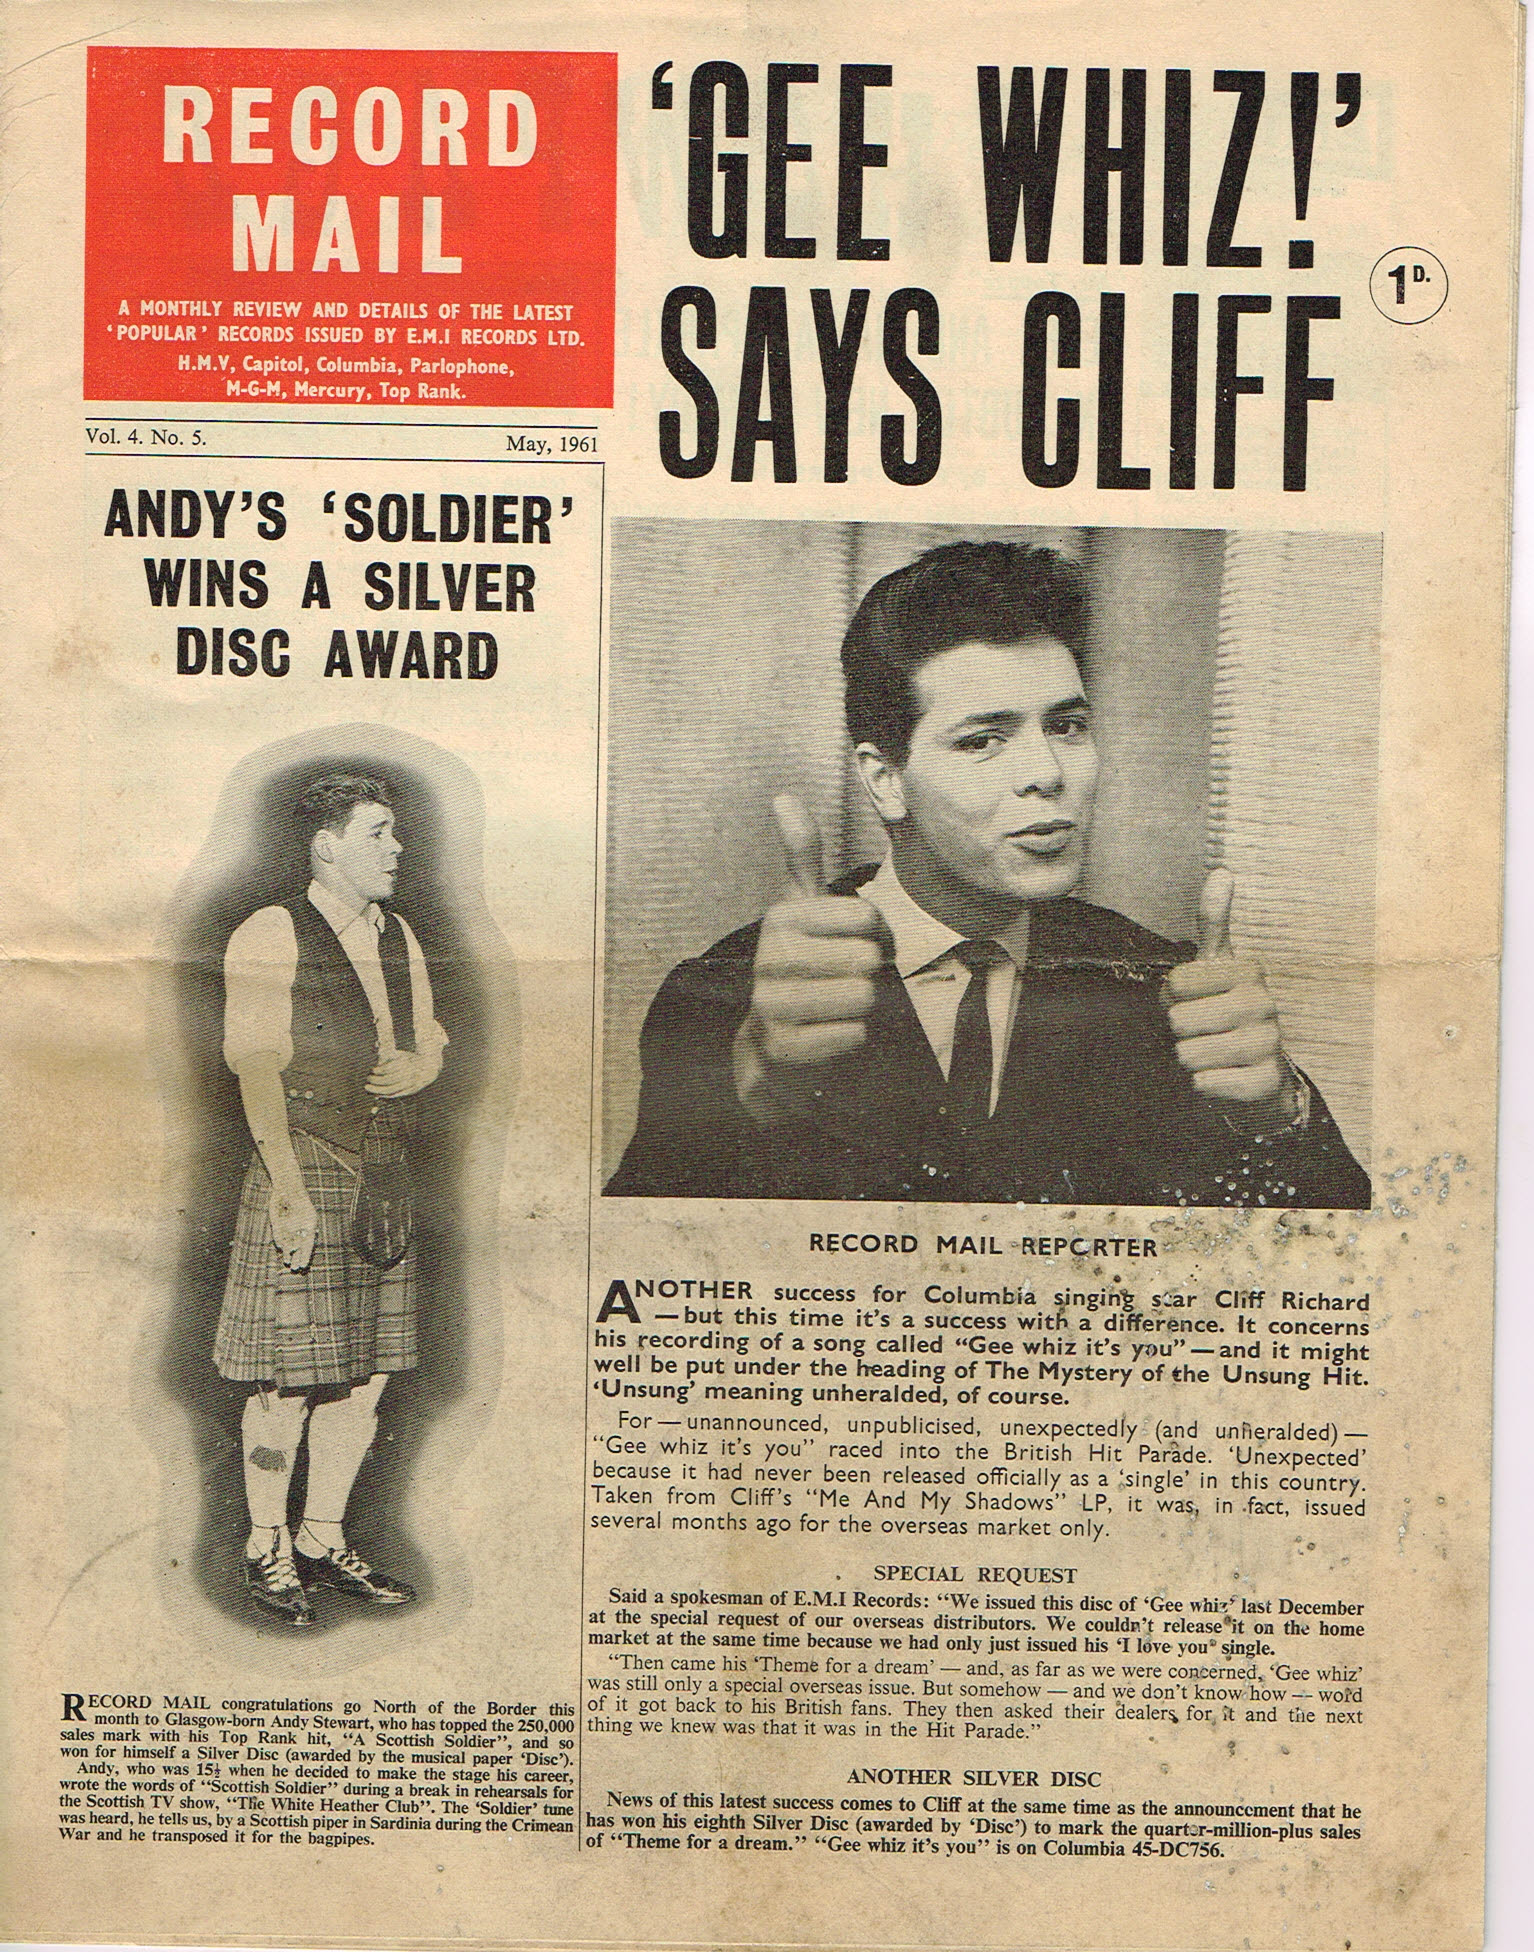 May 1961 RECORD MAIL Vintage Newspaper CLIFF RICHARD Andy Stewart refS4 May 1961 monthly review and details of the latest 'popular' records issued by E.M.I. Records Ltd. Vol.4 No.5. 16 page publication pre-owned in well read condition.